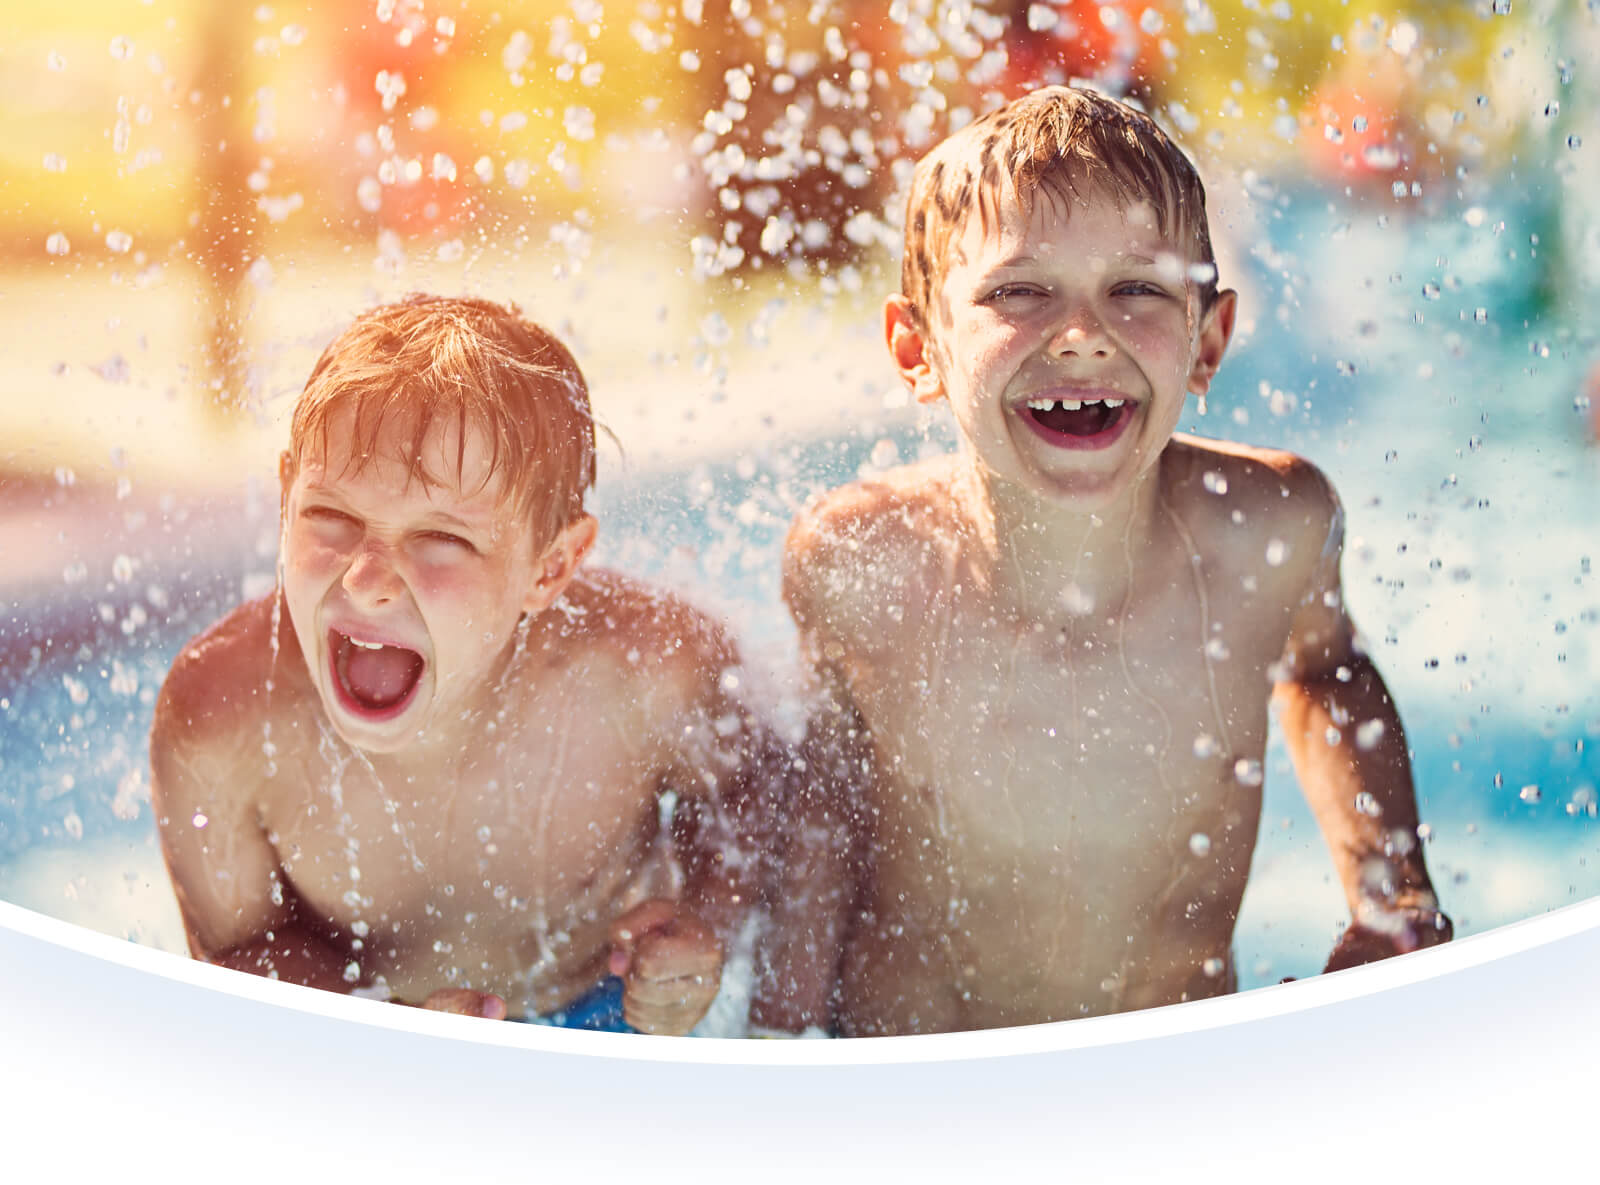 Two boys playing in water.